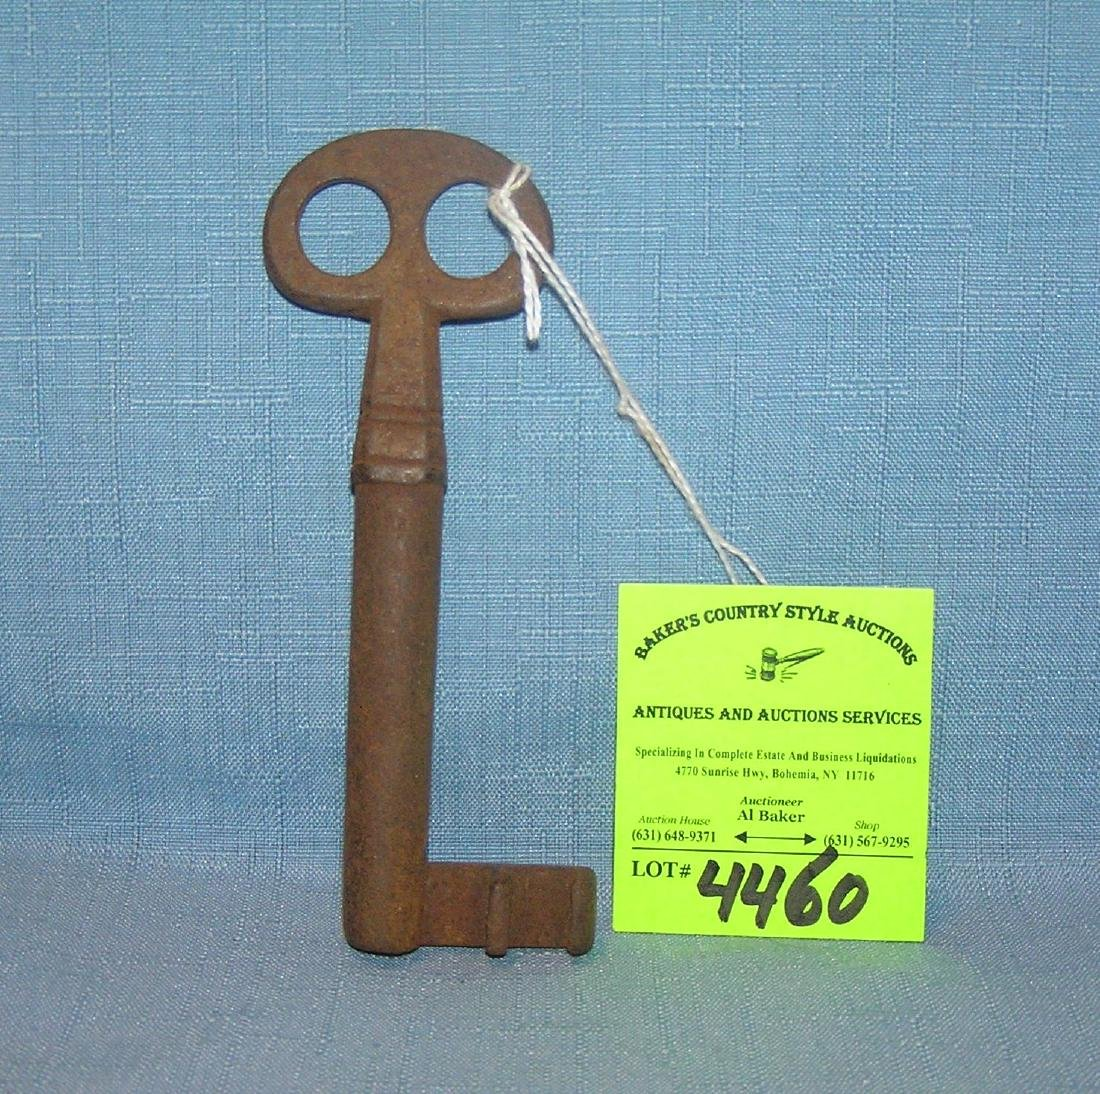 Antique jail house key circa 1860's